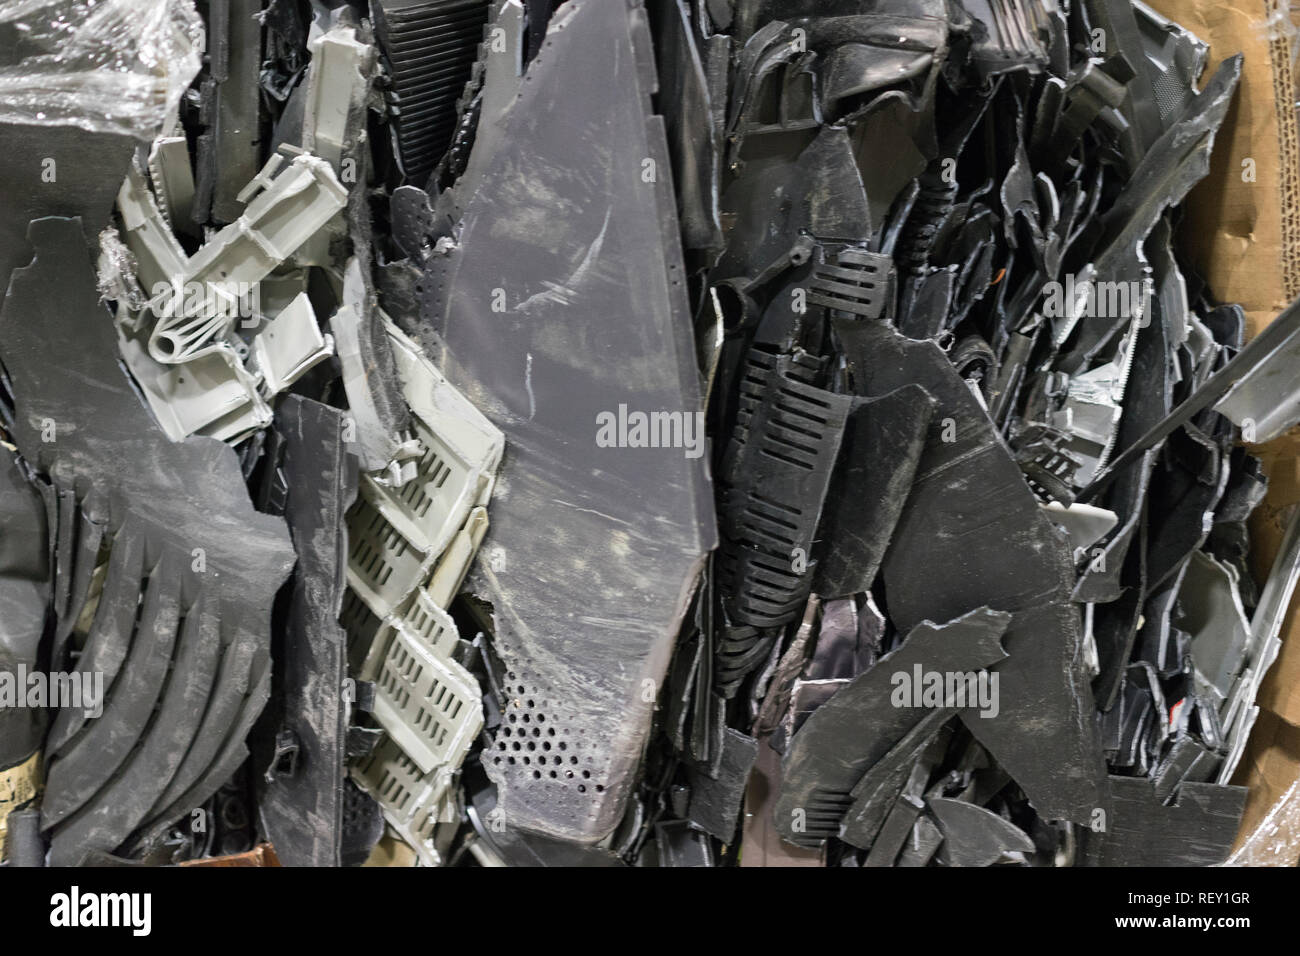 Computer trash waste recycle technological electronic waste awaiting to be dismantles as electronic recyclable waste. - Stock Image